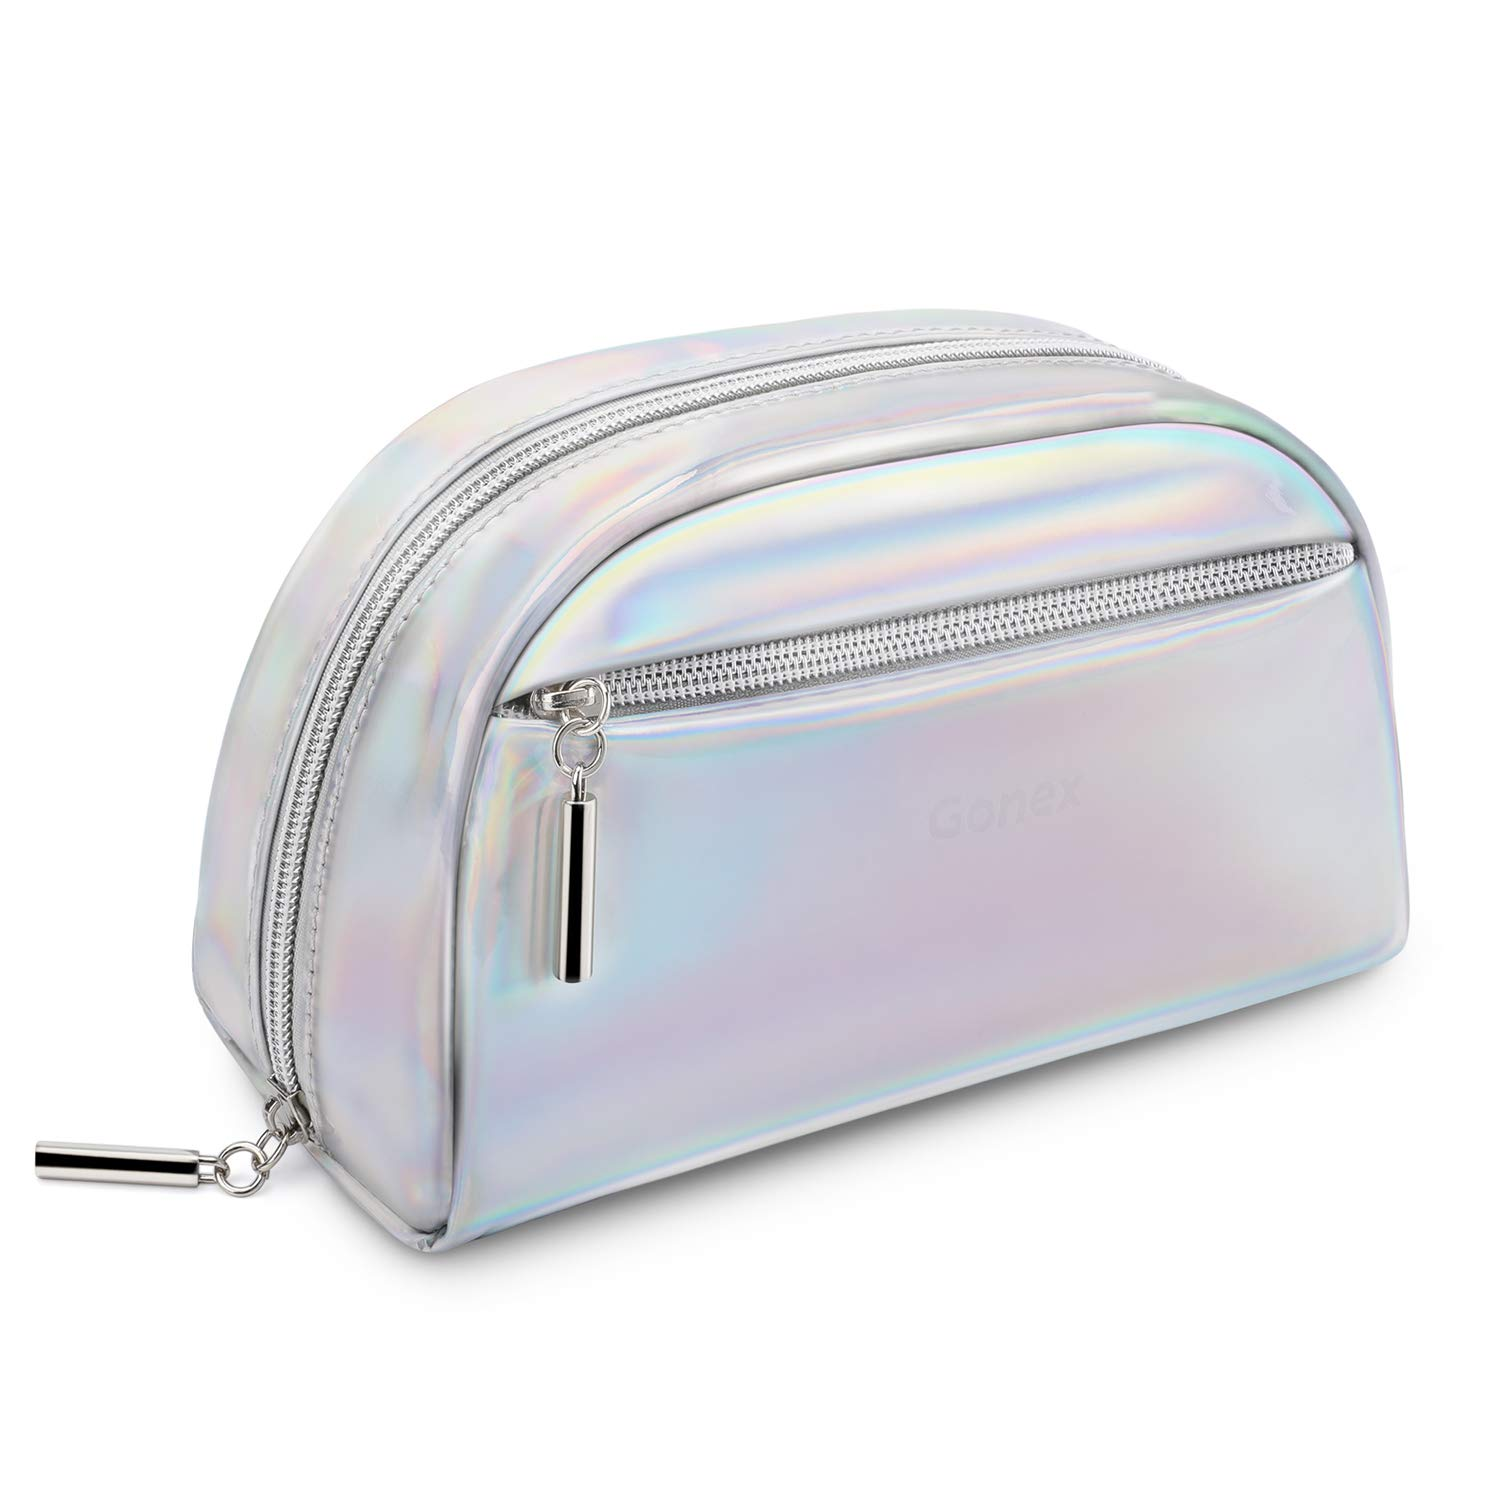 Gonex Small Makeup Bag for Purse Metallic Silver Cosmetics Bag PU Leather Travel Pouch for Women Girls Gifts Portable Water-Resistant Daily Storage Organzier, Silver